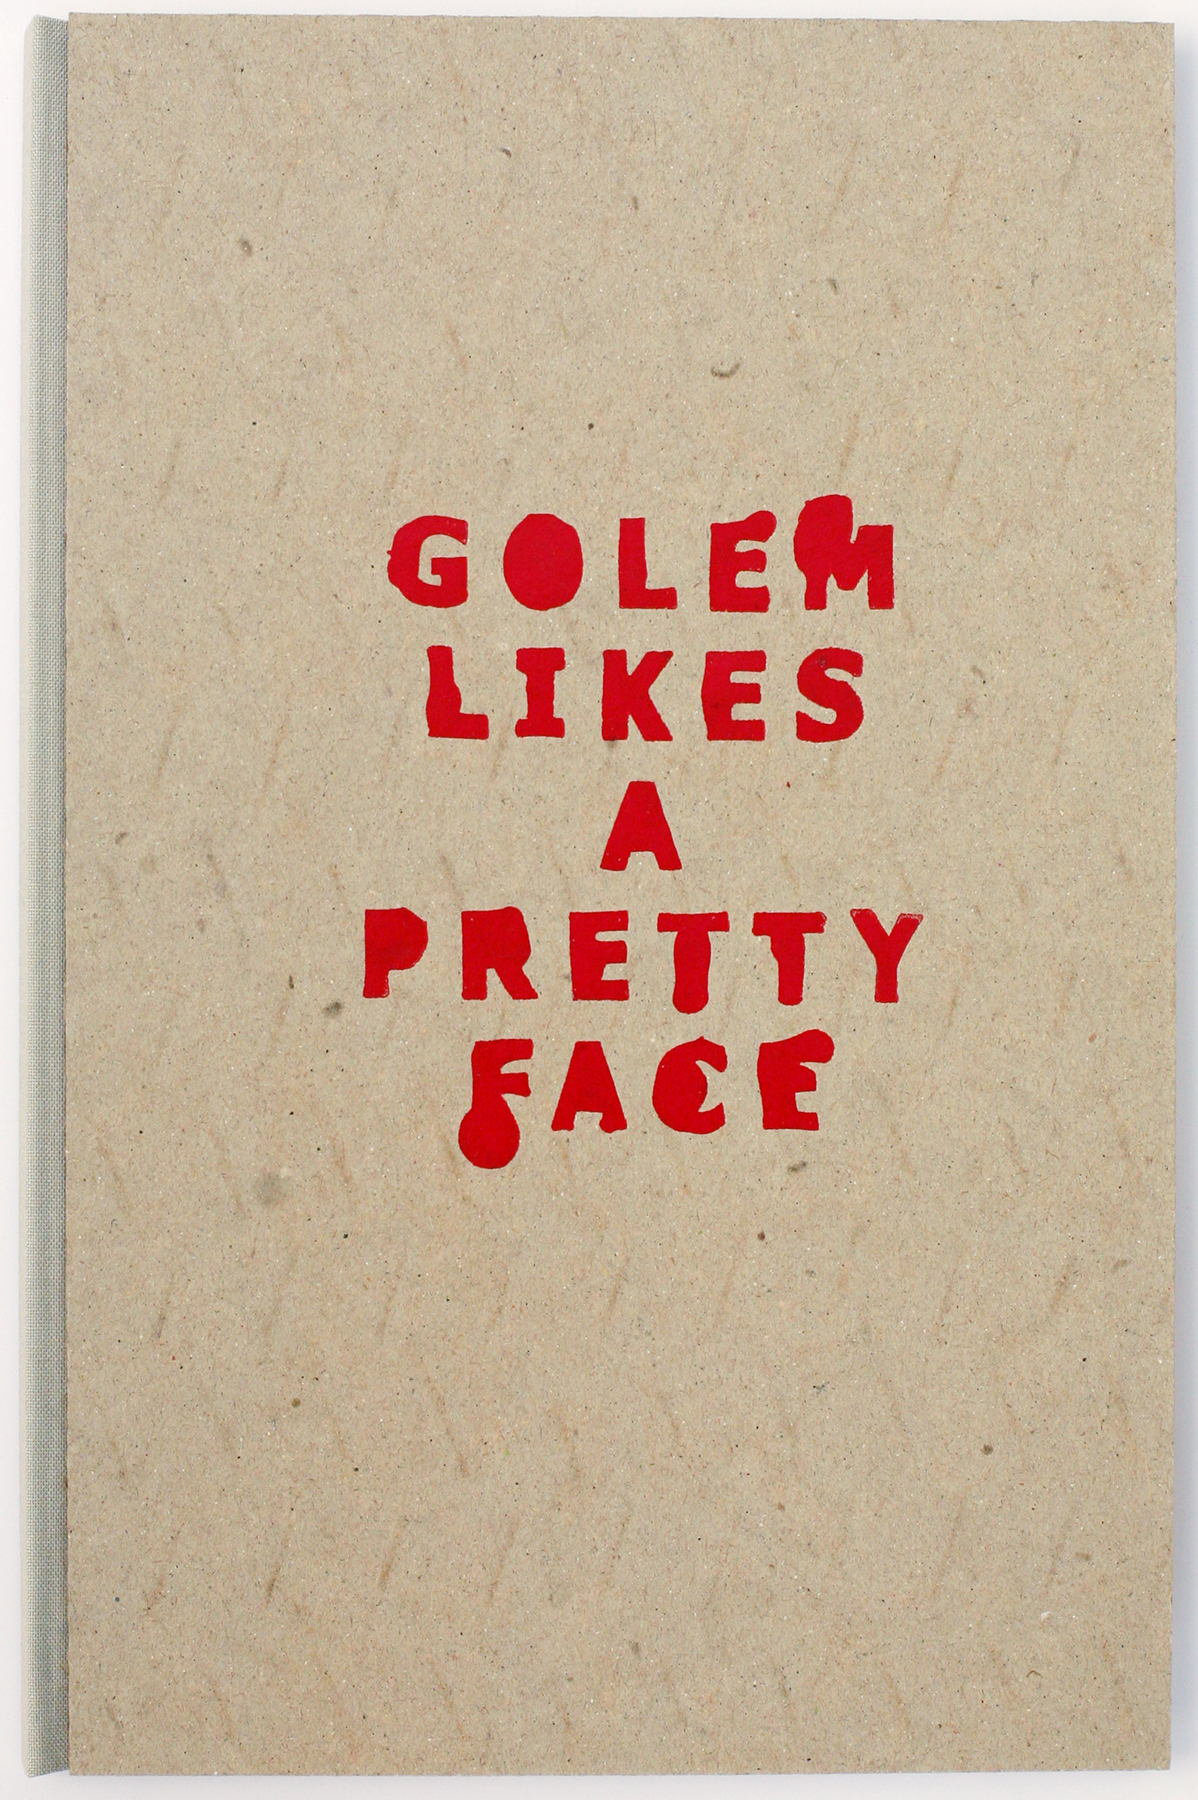 Golem Likes a Pretty Face, edition of 10, 2014 (in 5 private collections, including the Achenbach Foundation)